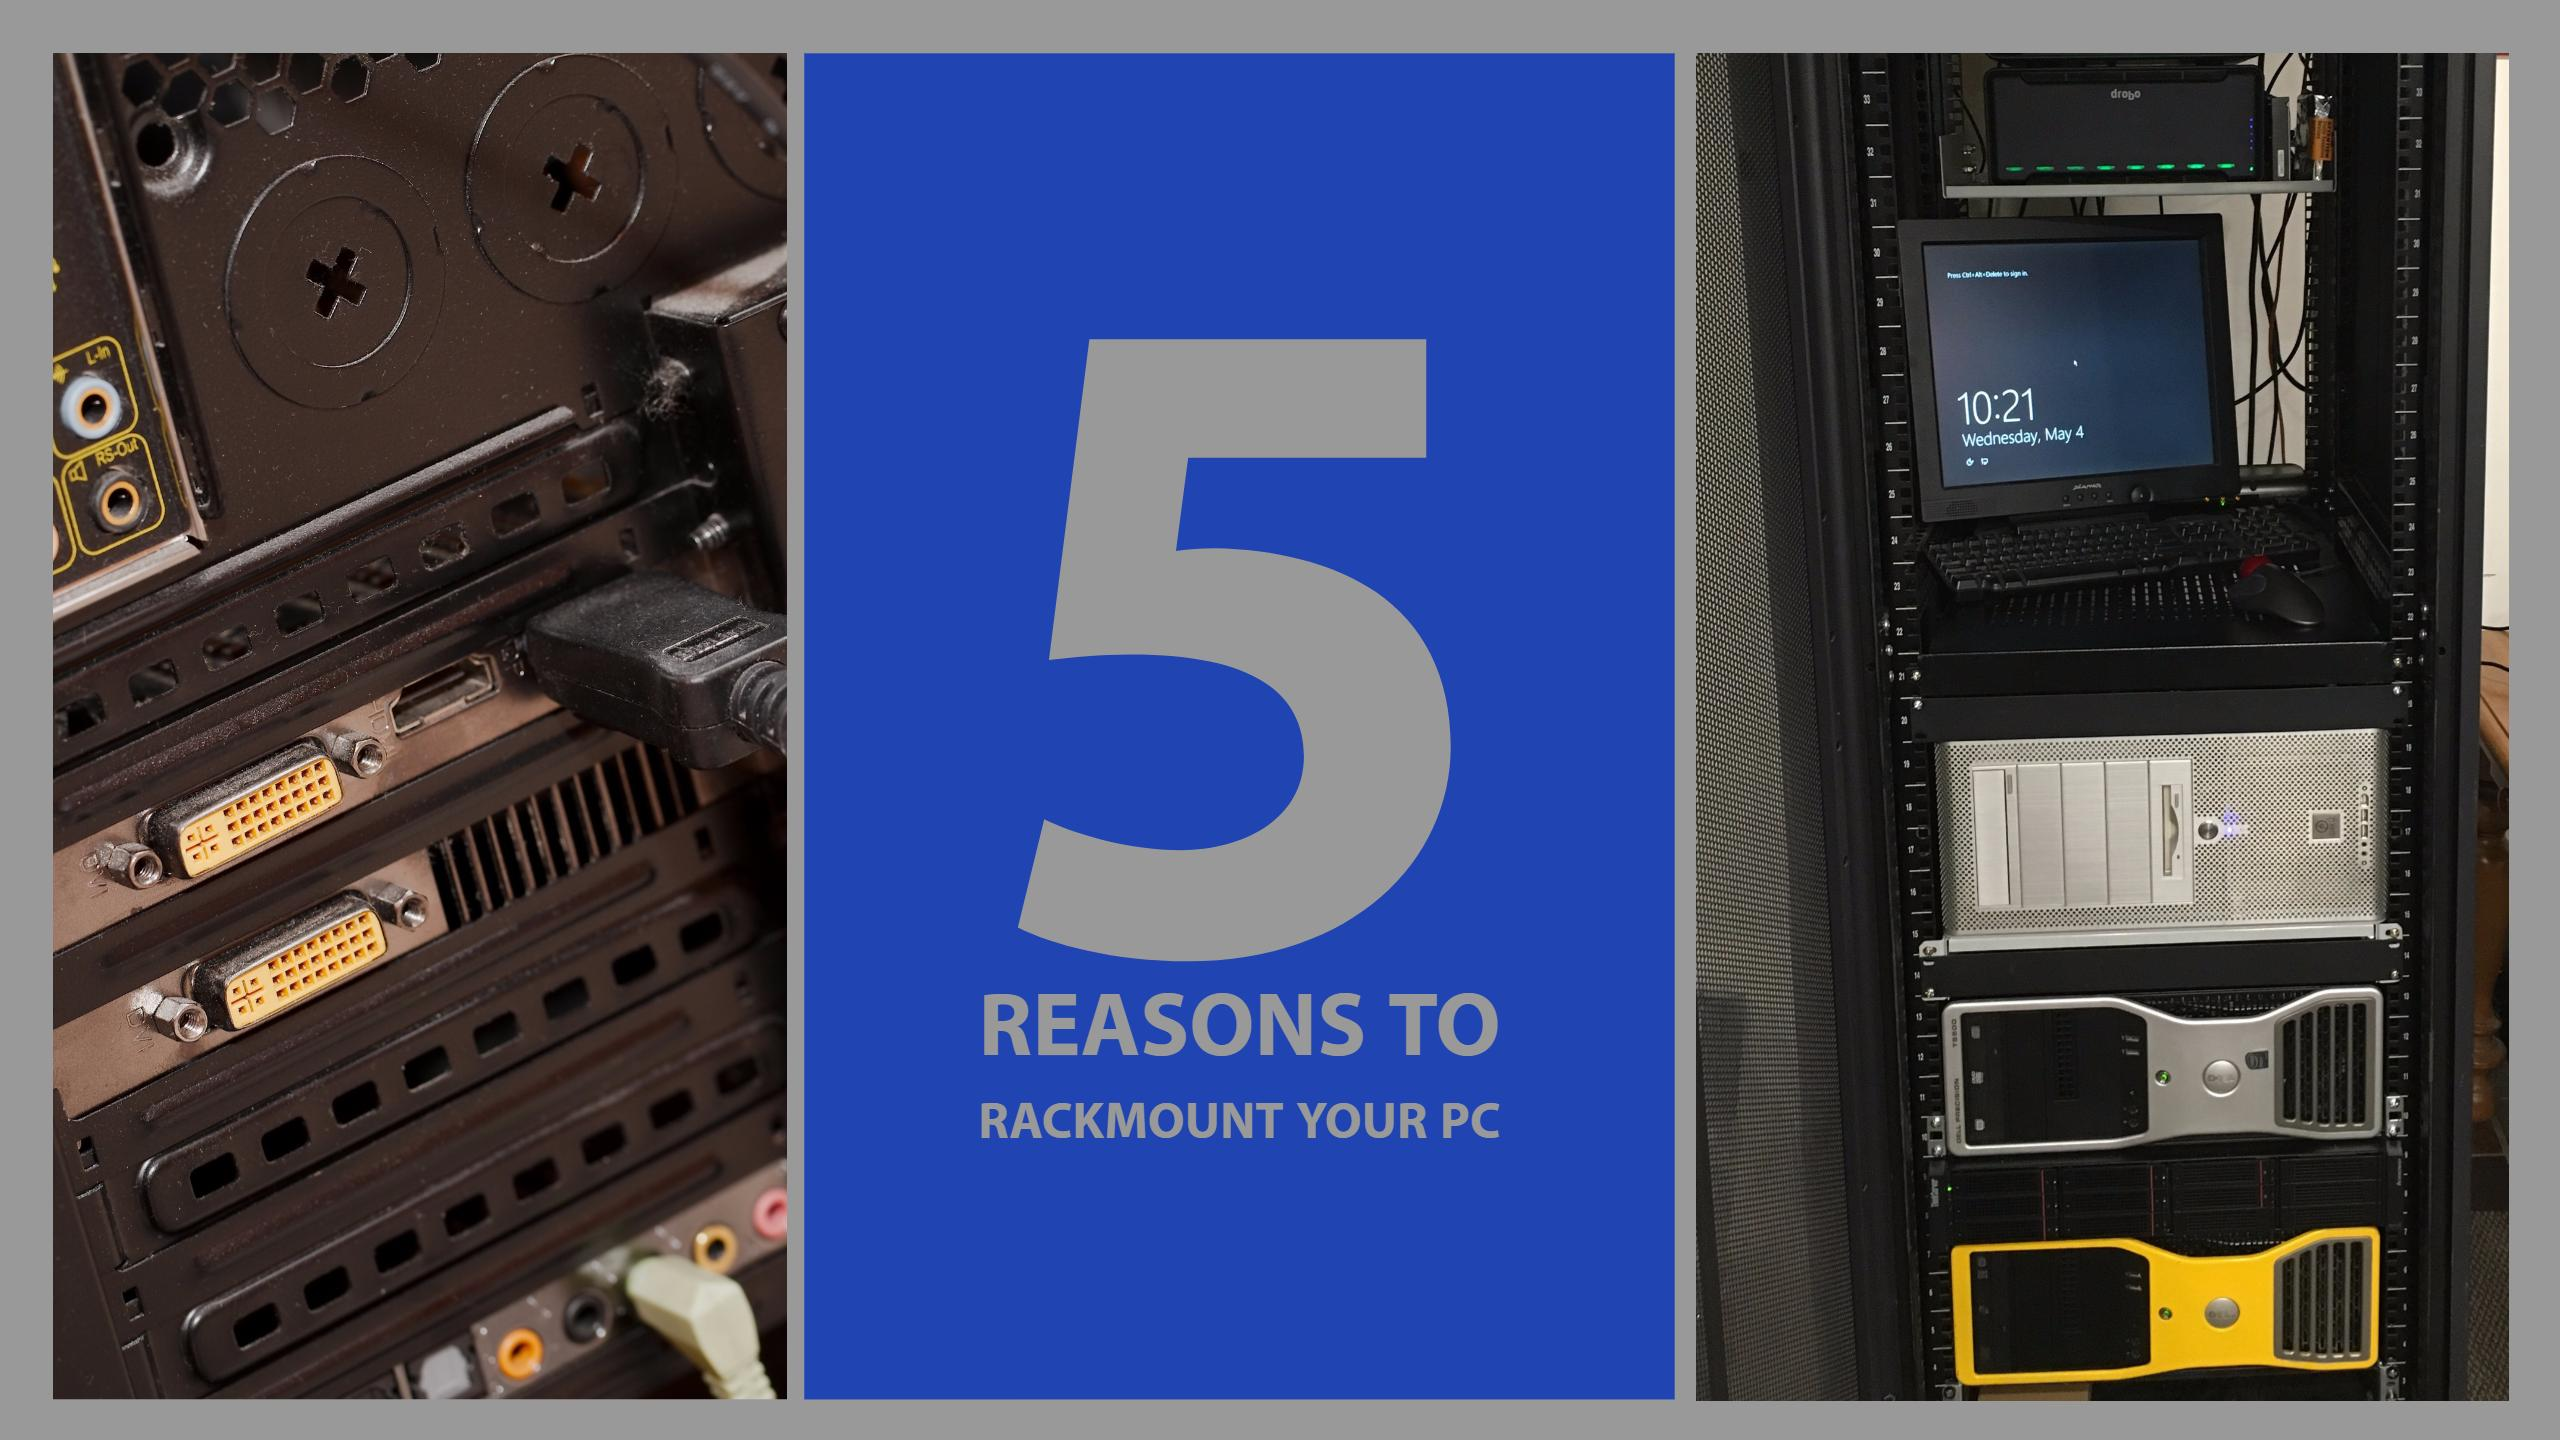 5 Reasons to Rackmount Your PC